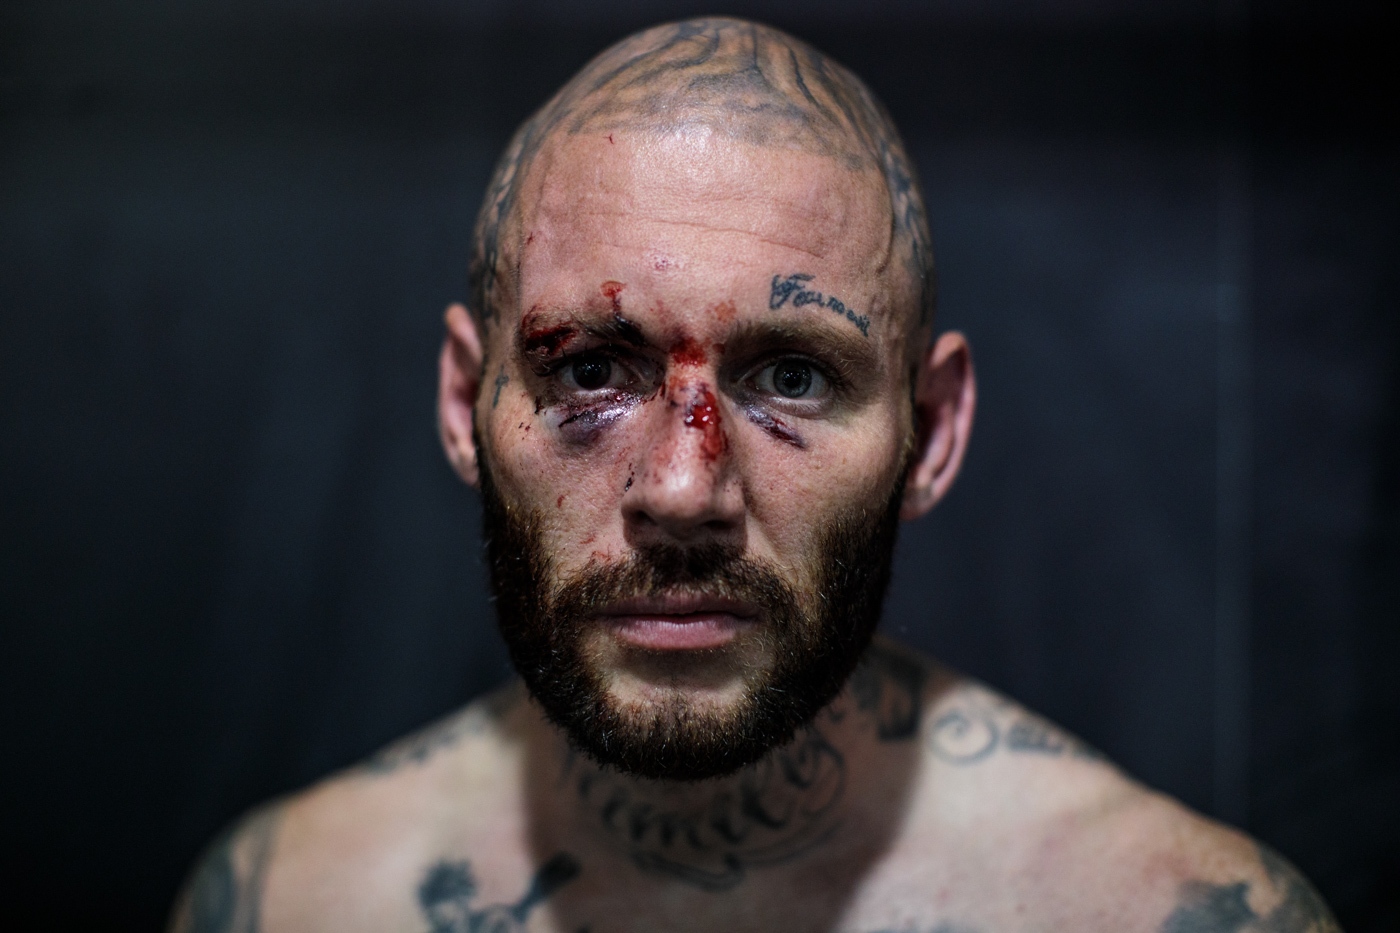 MANCHESTER, ENGLAND: Bare-knuckle boxer Chris Wheeldon, age 36 from Warrington, poses for a photo before his fight at an Ultimate Bare Knuckle Boxing (UBKB) event at Bowlers Exhibition Centre on August 4, 2018.